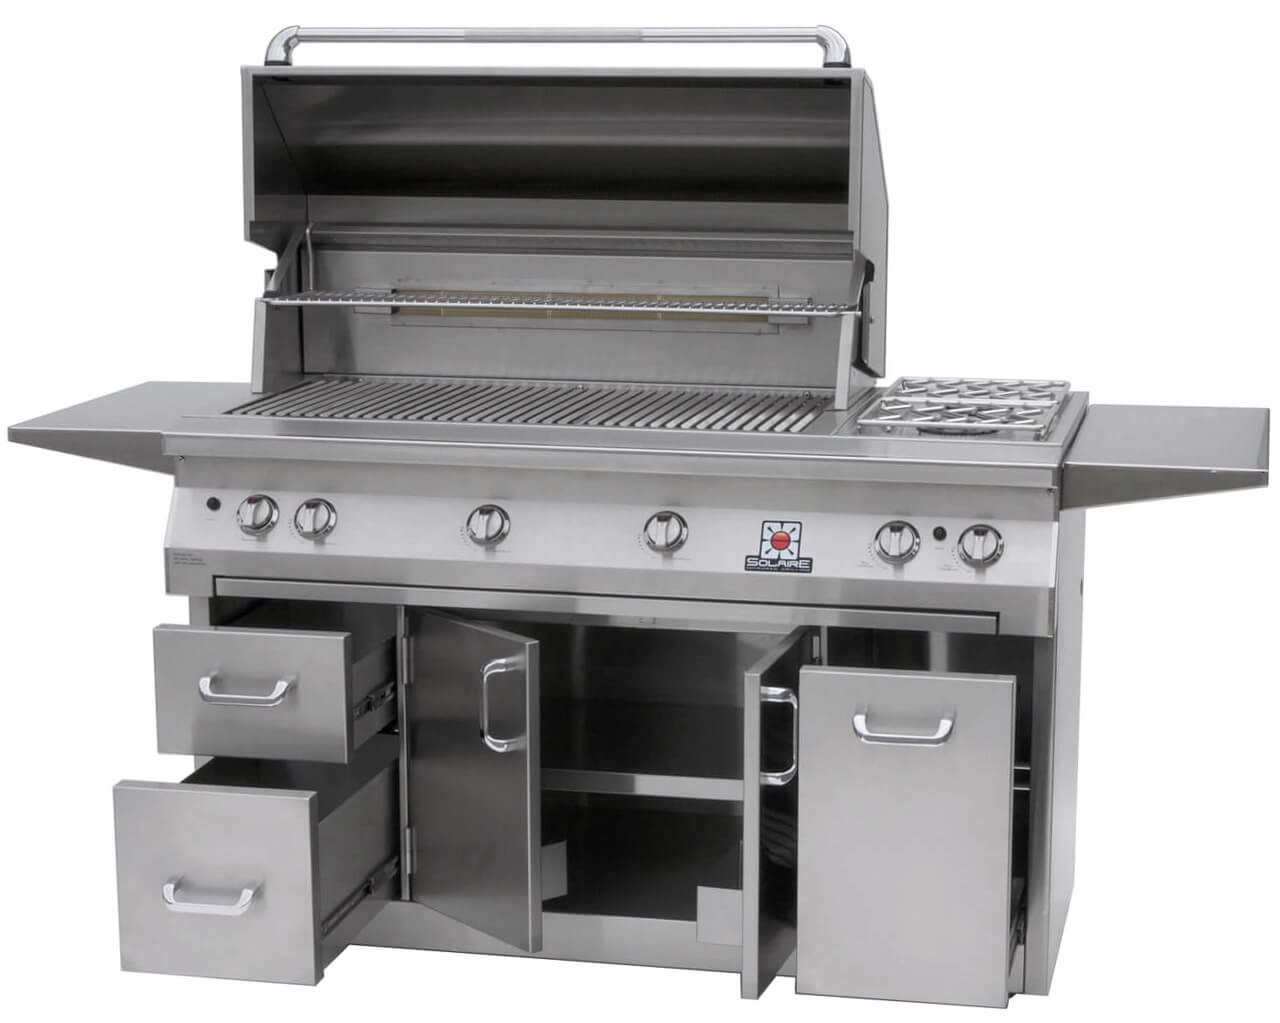 Solaire 56 Inch Grill, Premium Cart A, Hood Up, Shelves Up, Doors Open